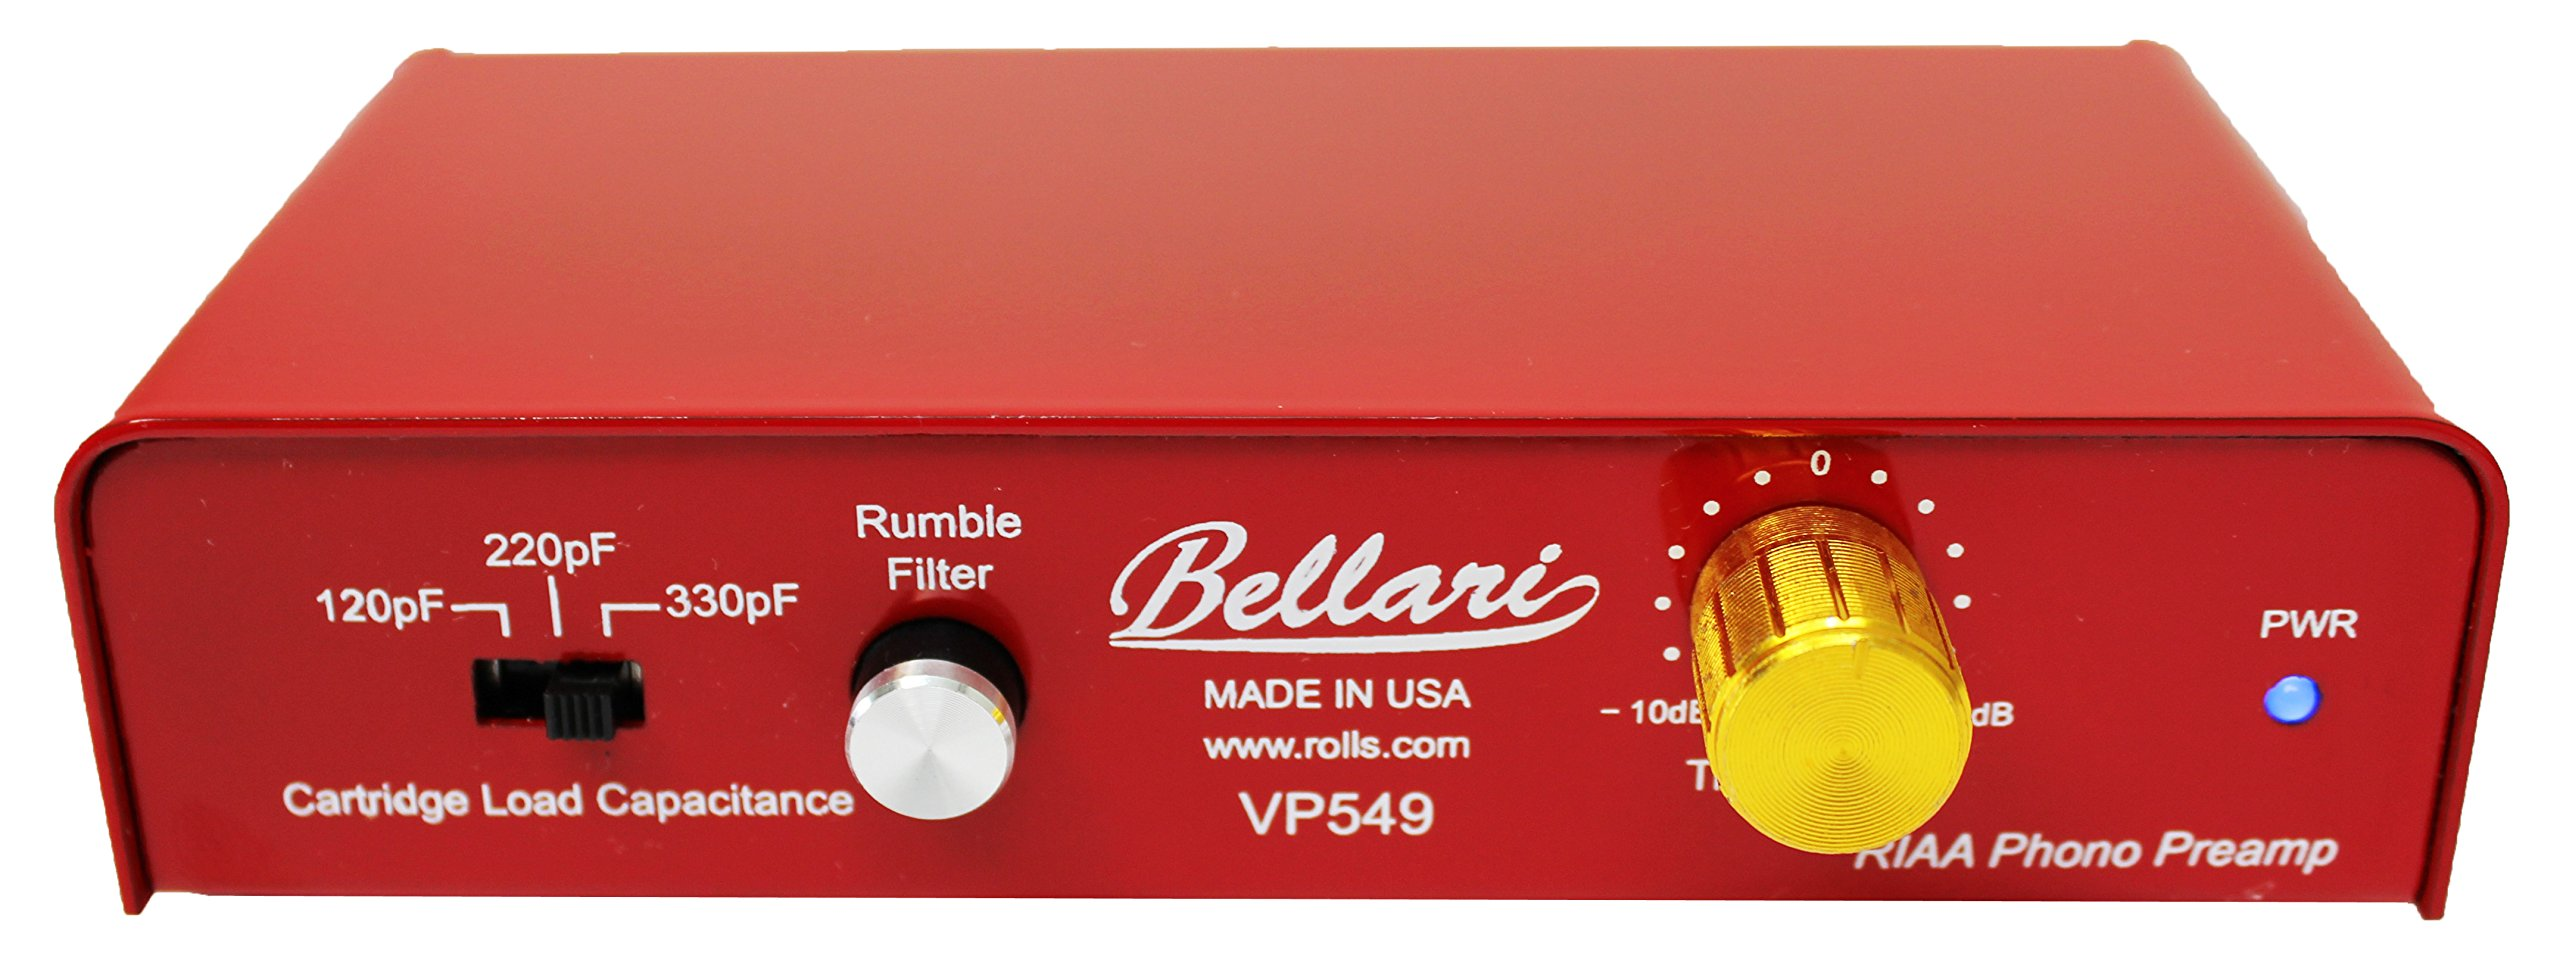 Rolls Bellari VP549 Phono Preamplifier by rolls